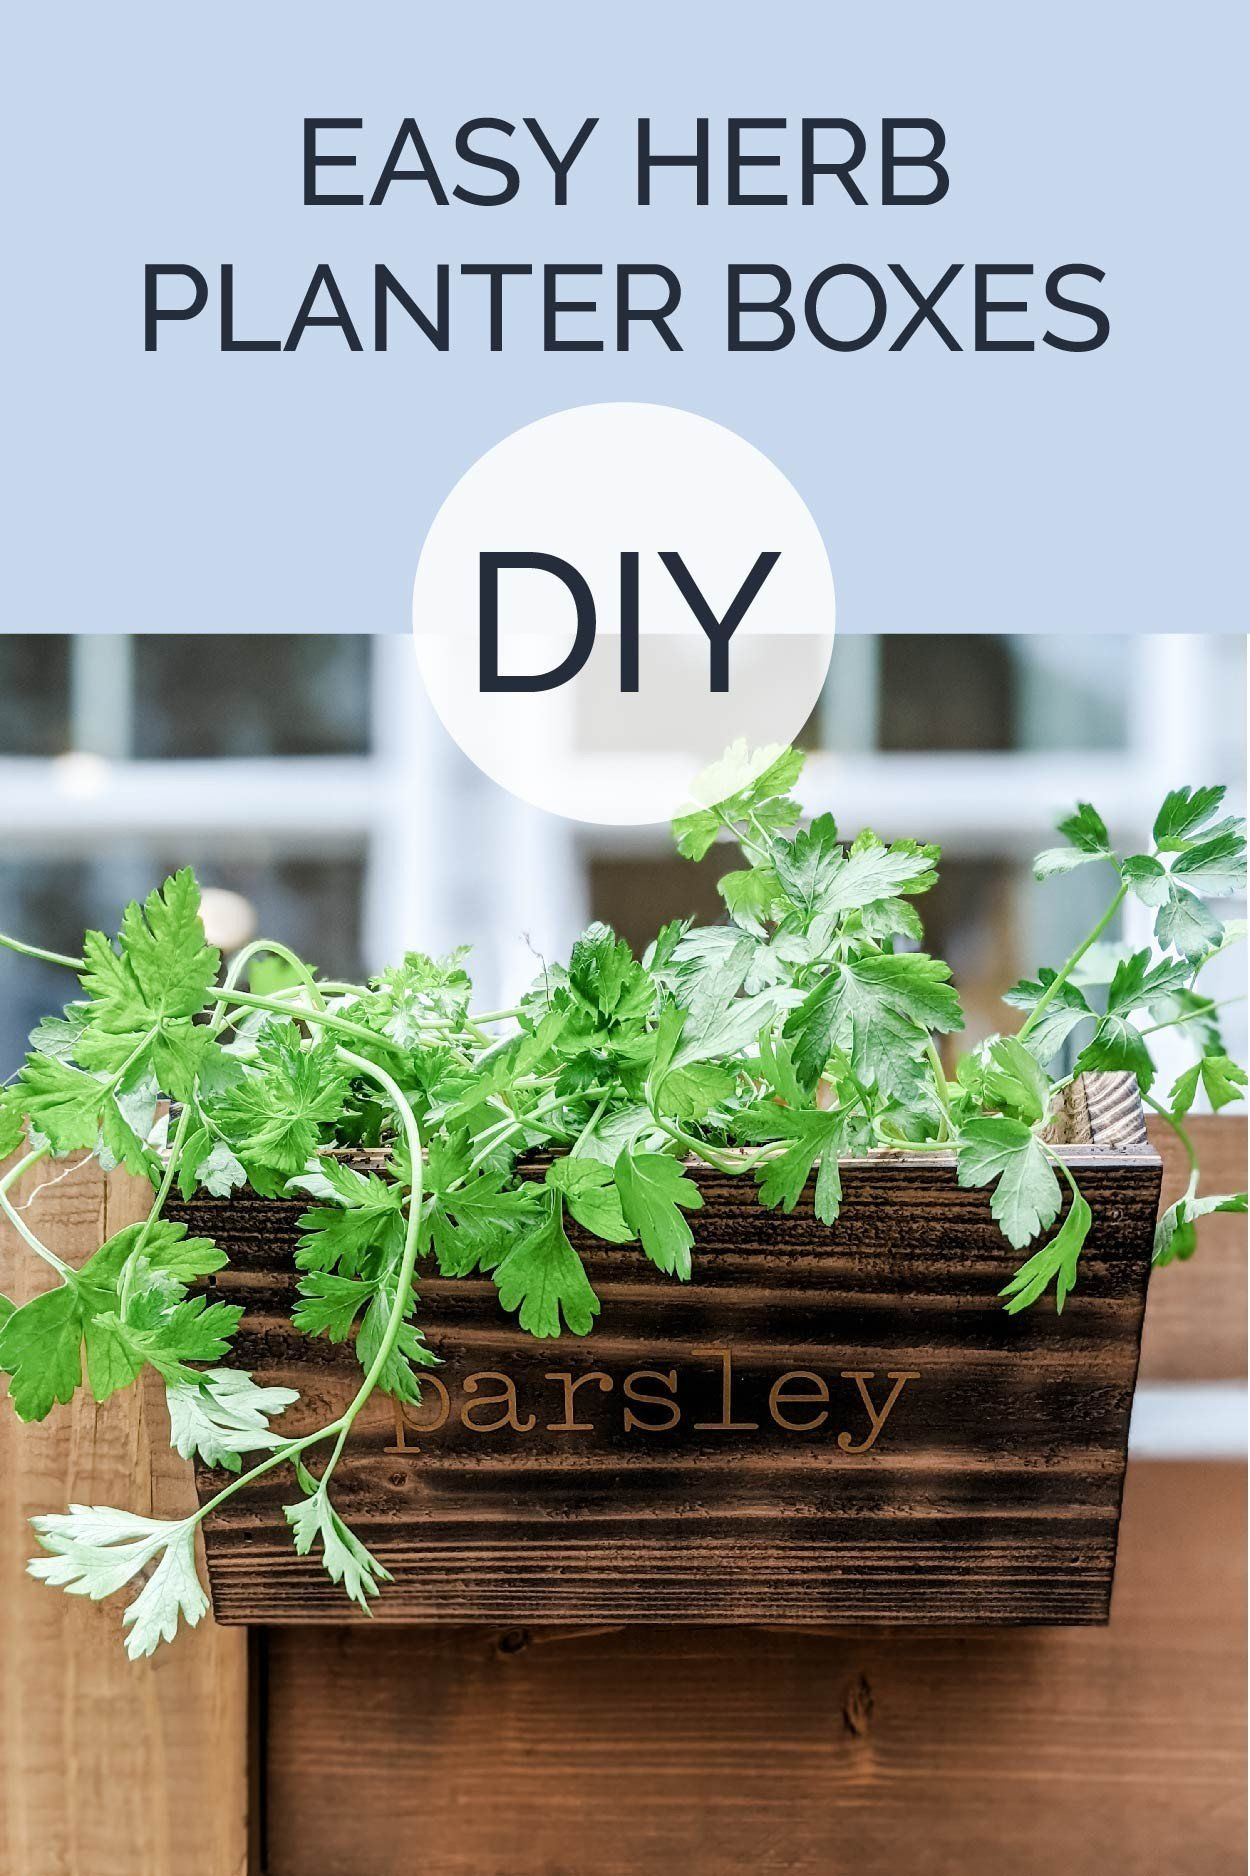 Diy Herb Planter Box Crafted By The Hunts In 2020 Herb Planter Box Herb Planters Planter Boxes